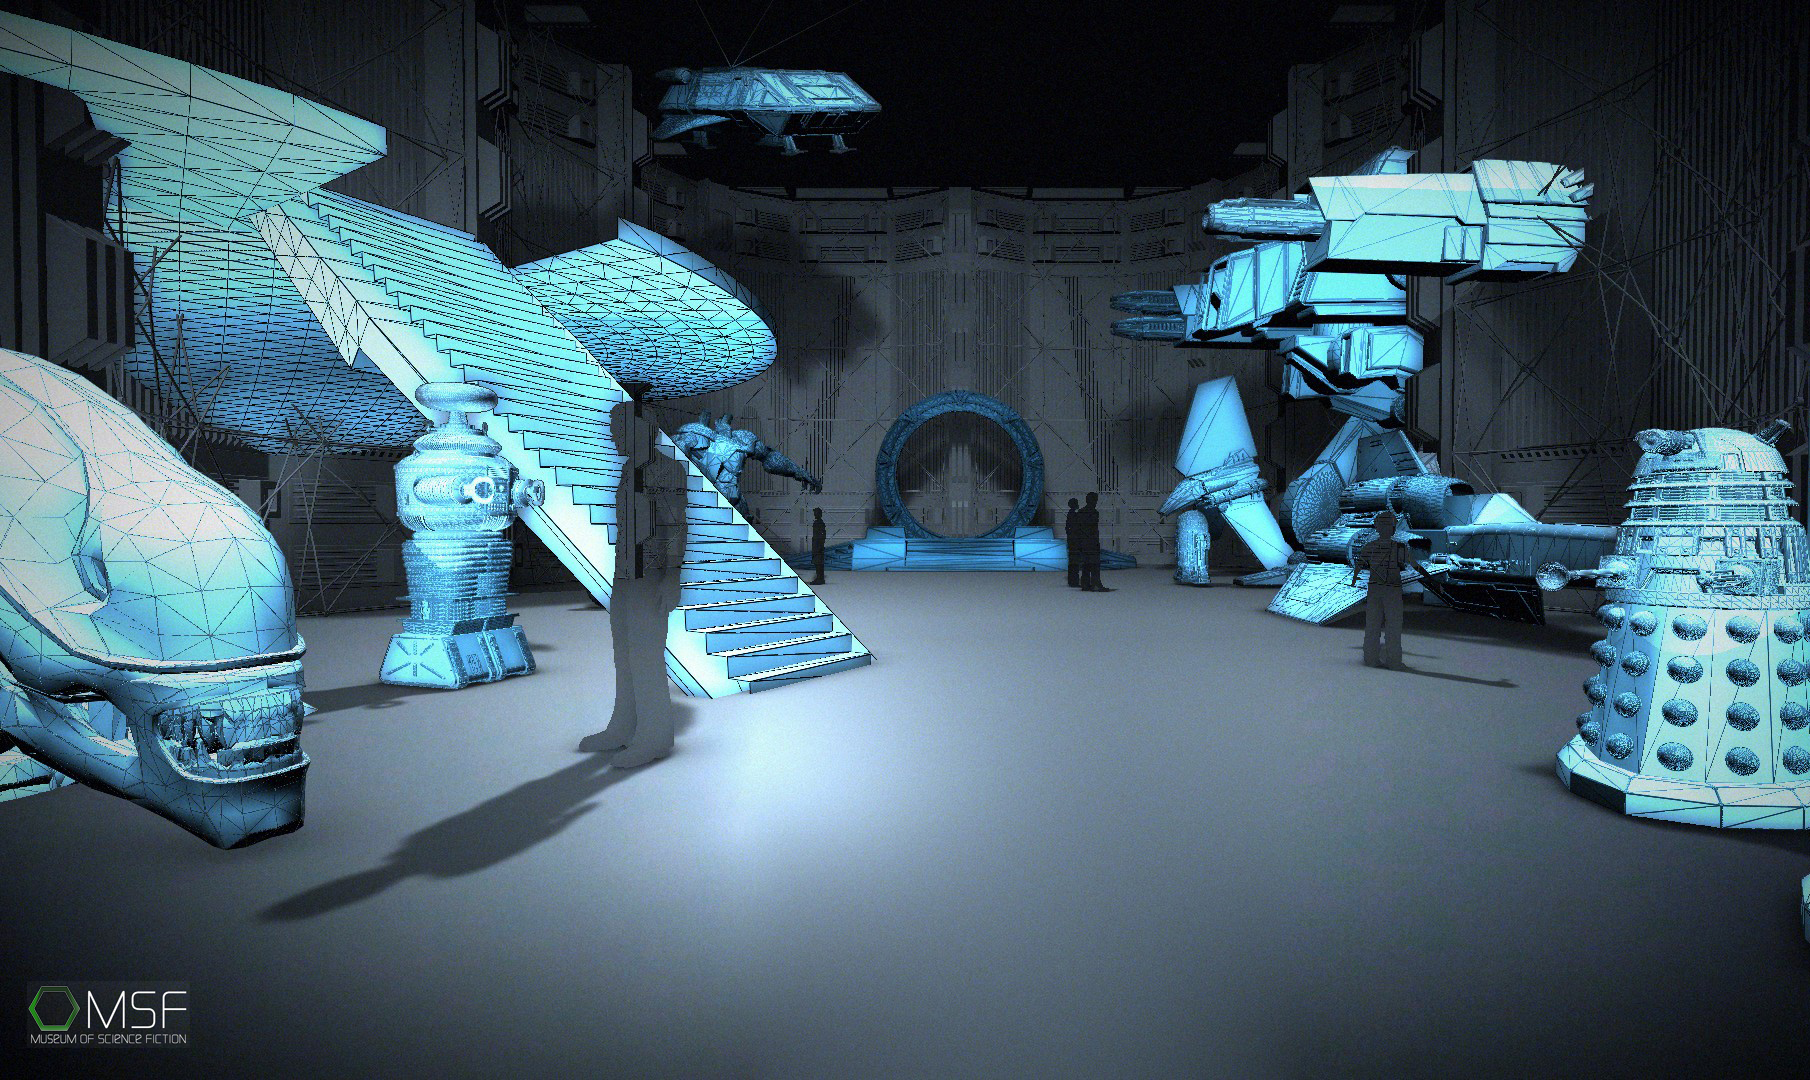 Could You Be the Next Geek Exhibit Designer for the Museum of Science Fiction?